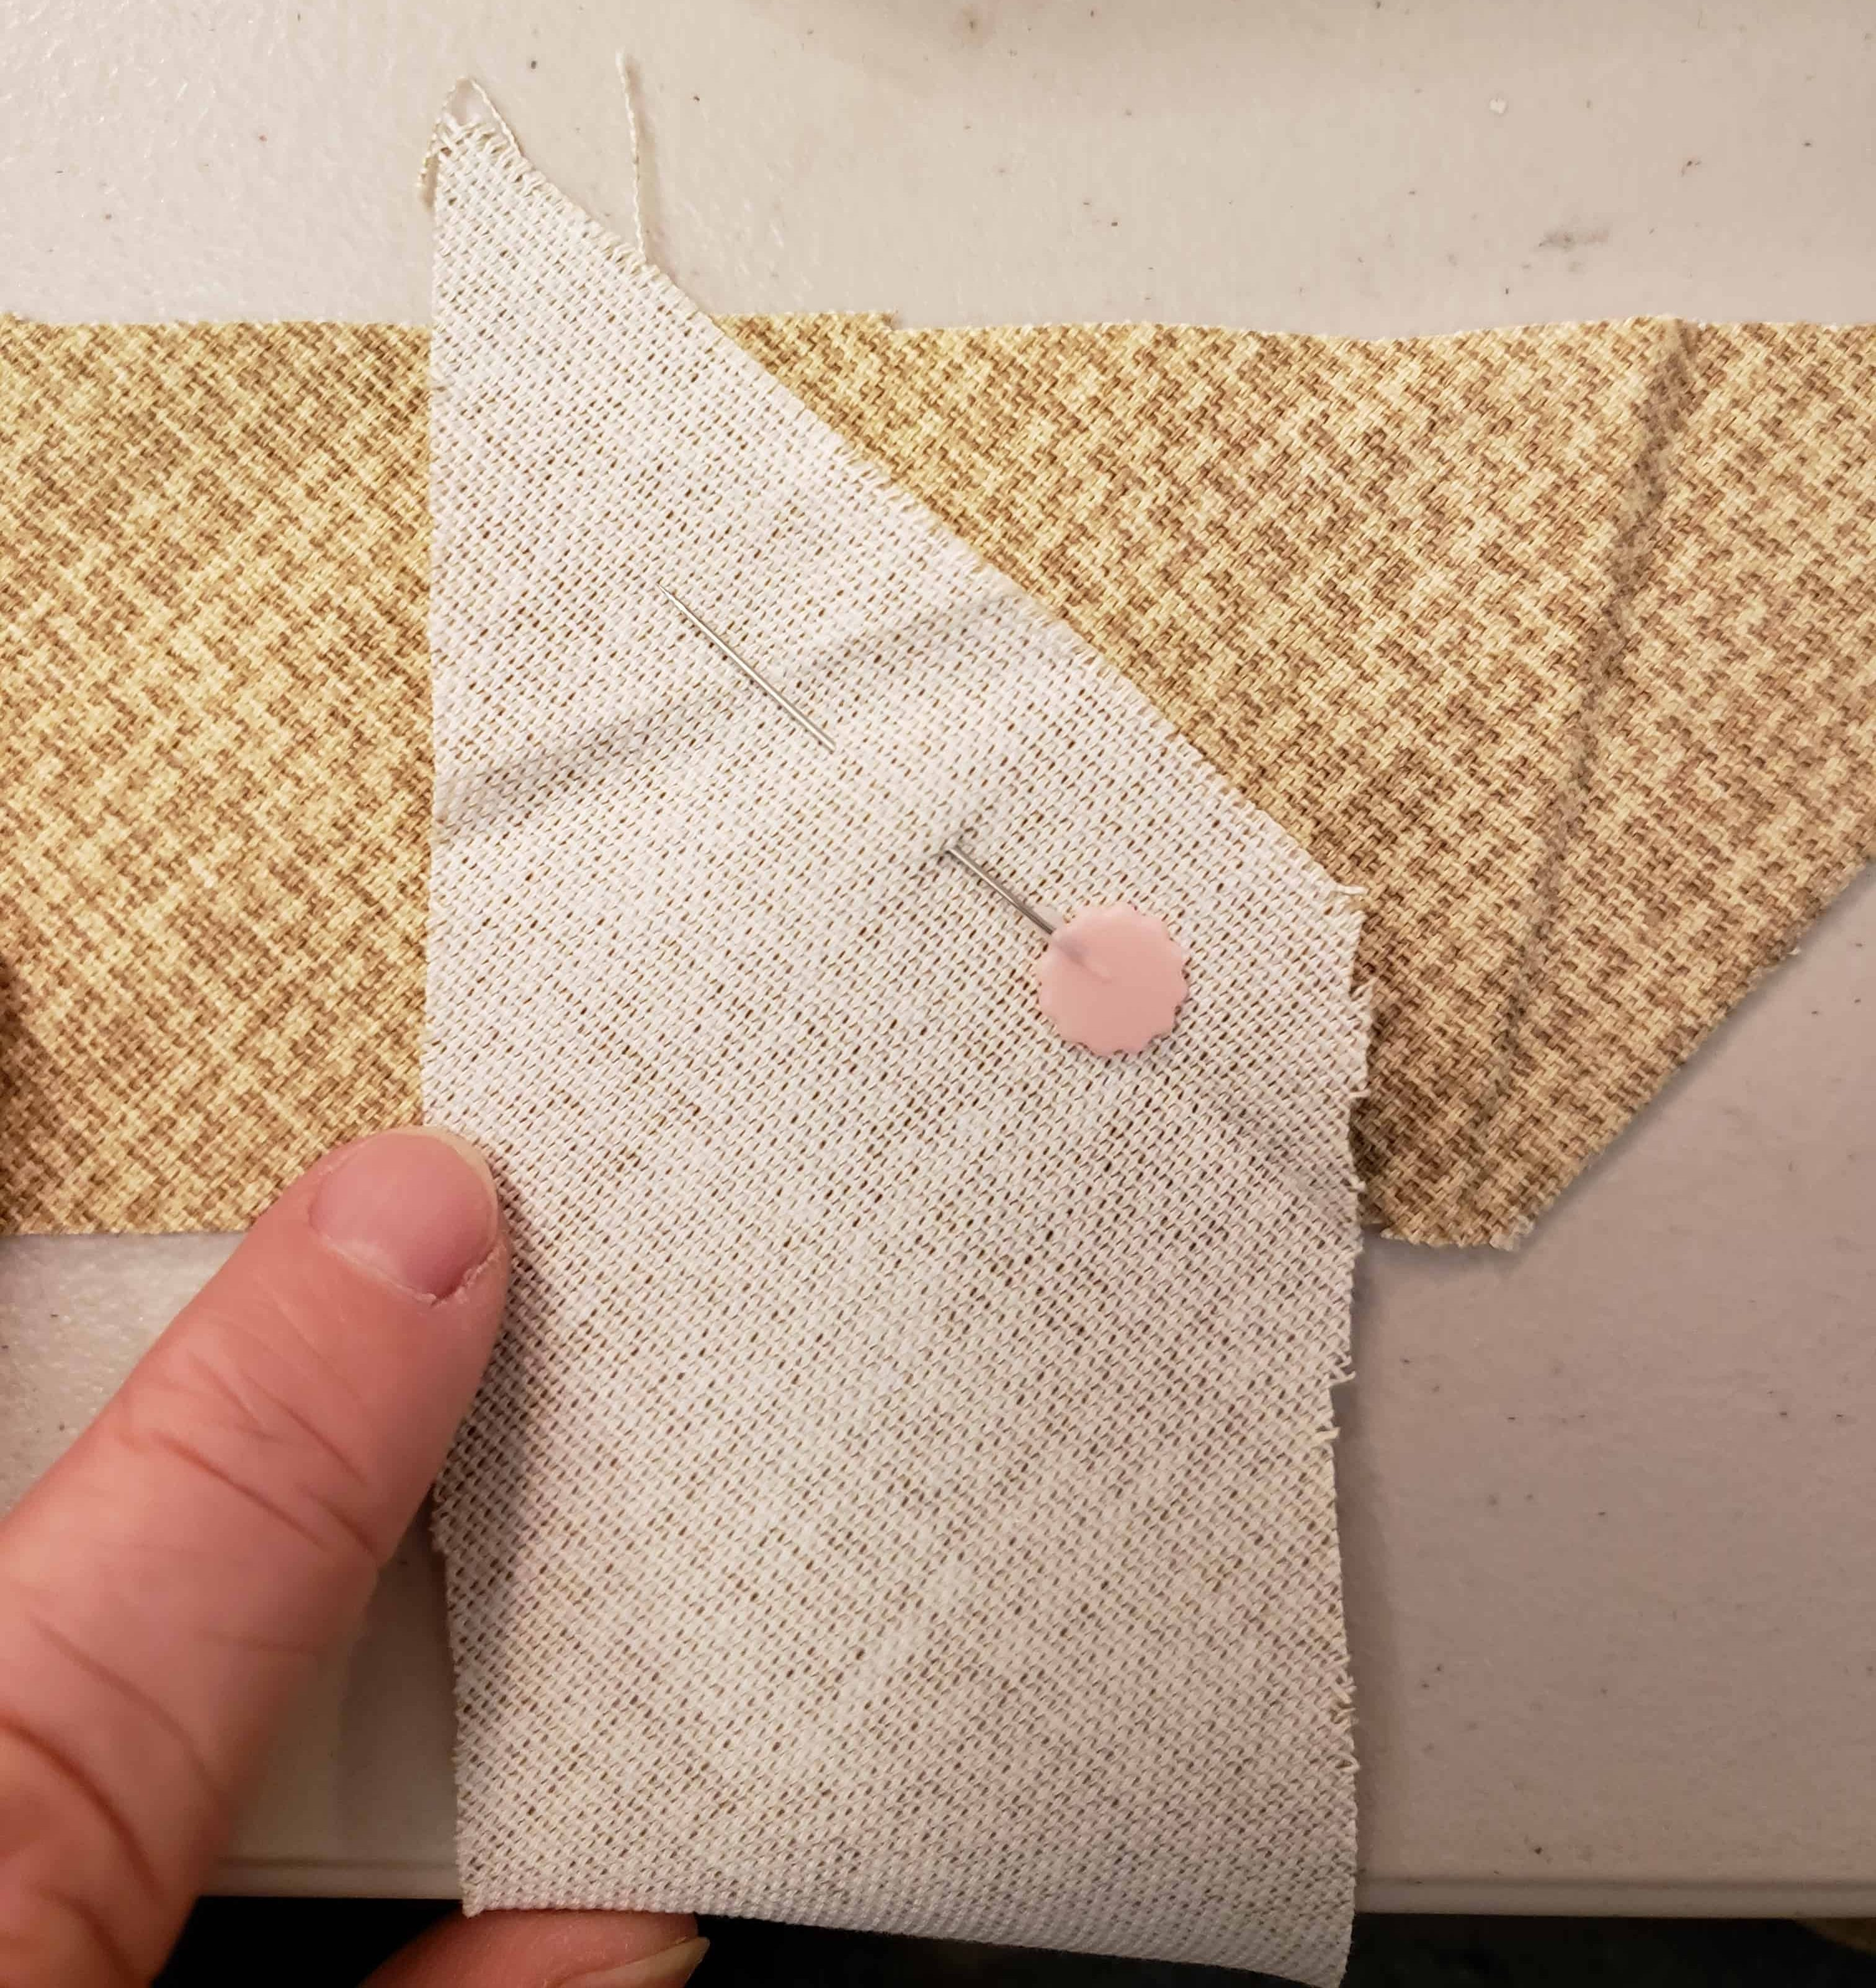 Placing piping stips together to sew into one long strip